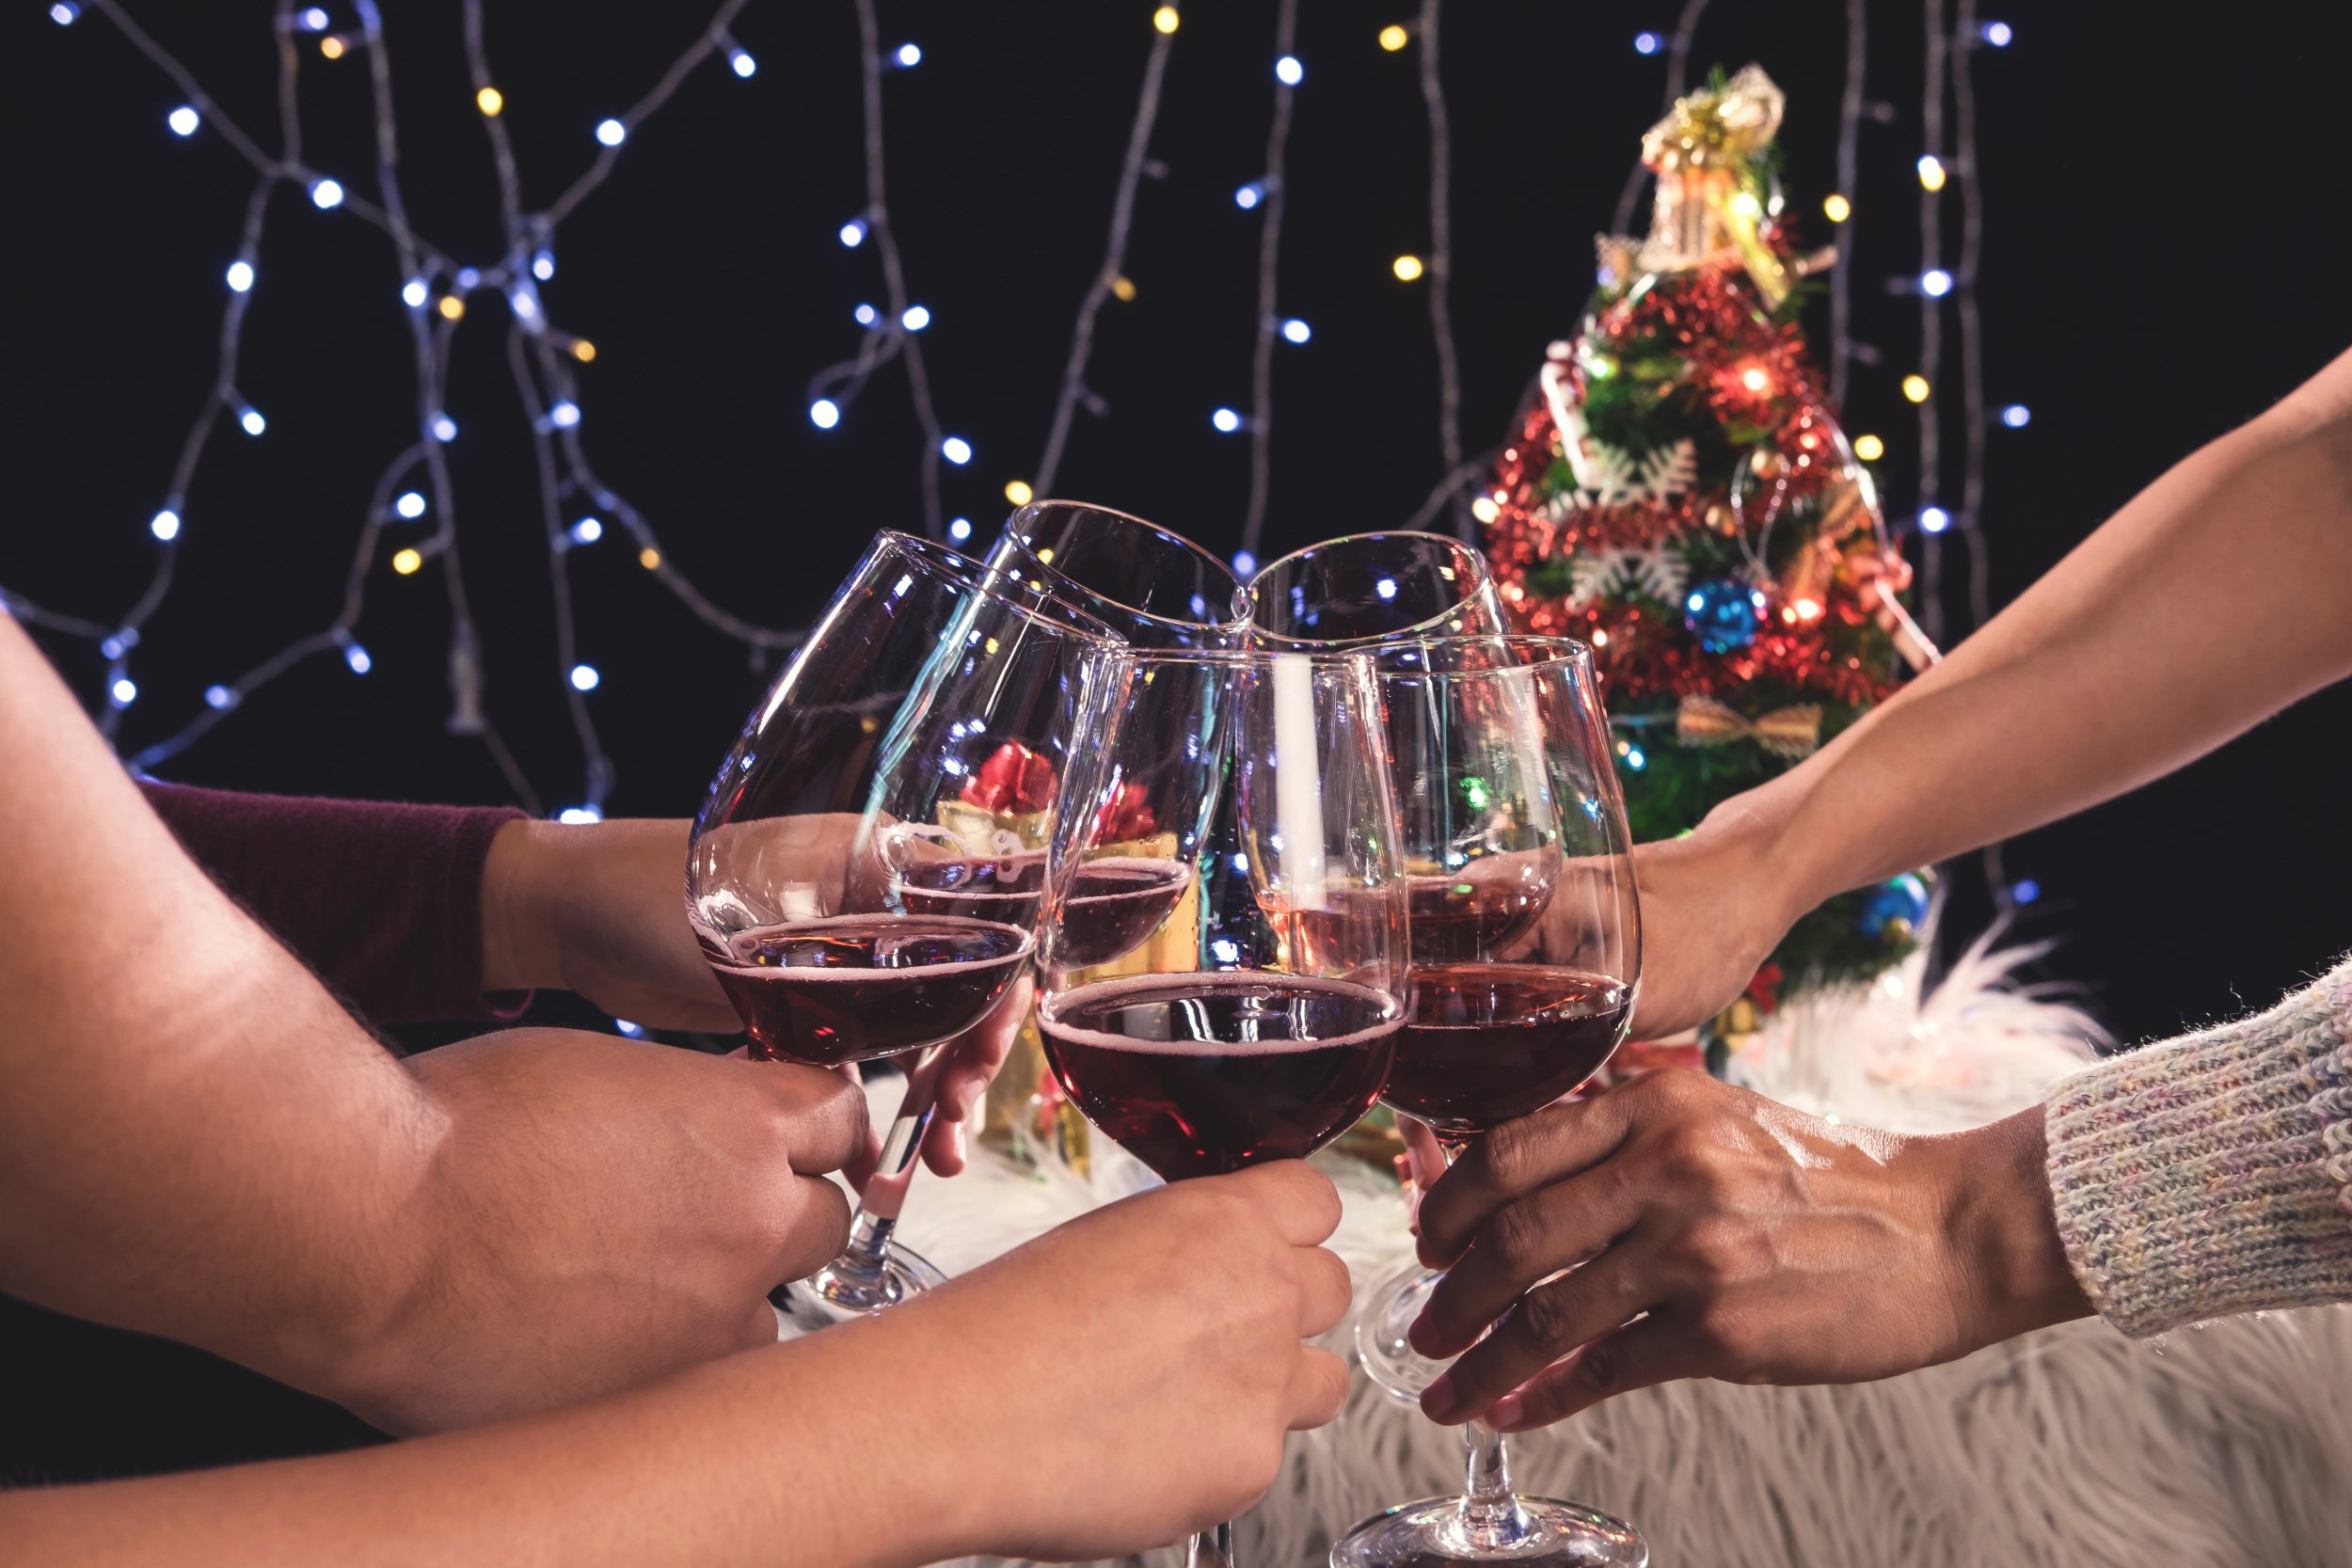 Drinking a glass of wine a day could keep you out of the hospital